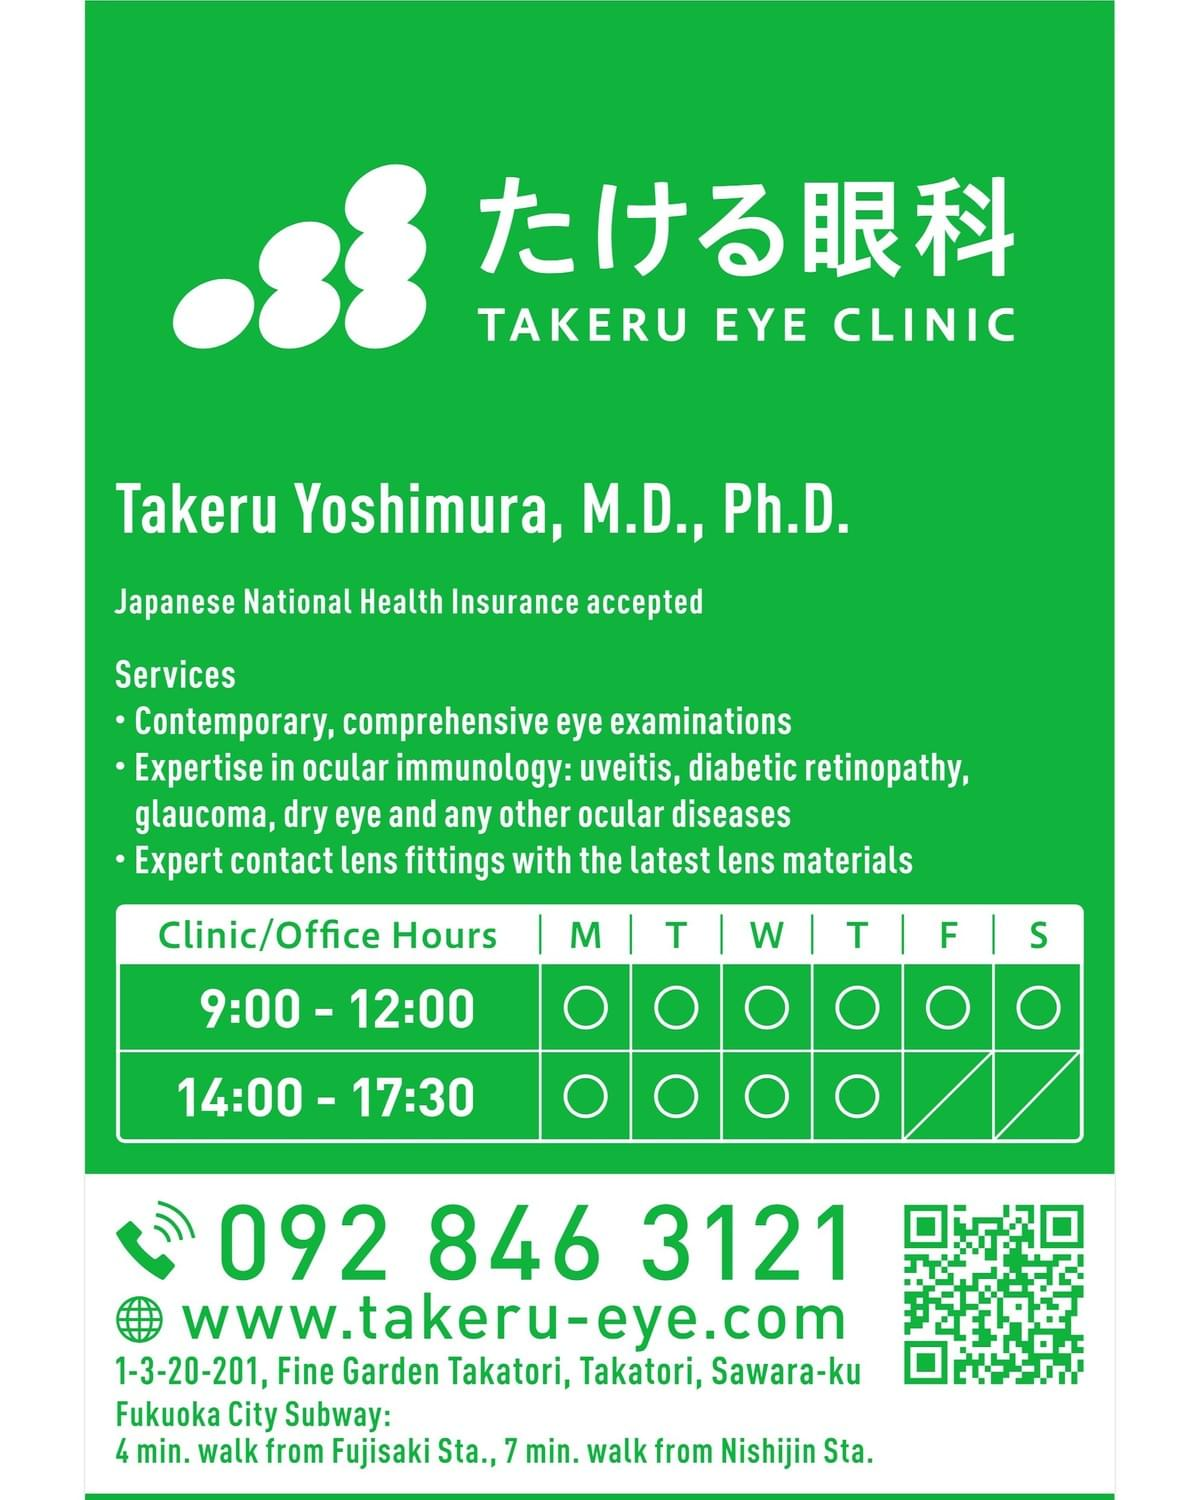 Takeru Yoshimura, Takeru Eye Clinic, Japanese National Health Insurance accepted, eye examinations, ocular immunology, uveitis, diabetic retinopathy, glaucoma, dry eye, ocular diseases, contact lens, Takatori, Sawara-ku, Fukuoka City, Subway, Nishijin station, Fujisaki station